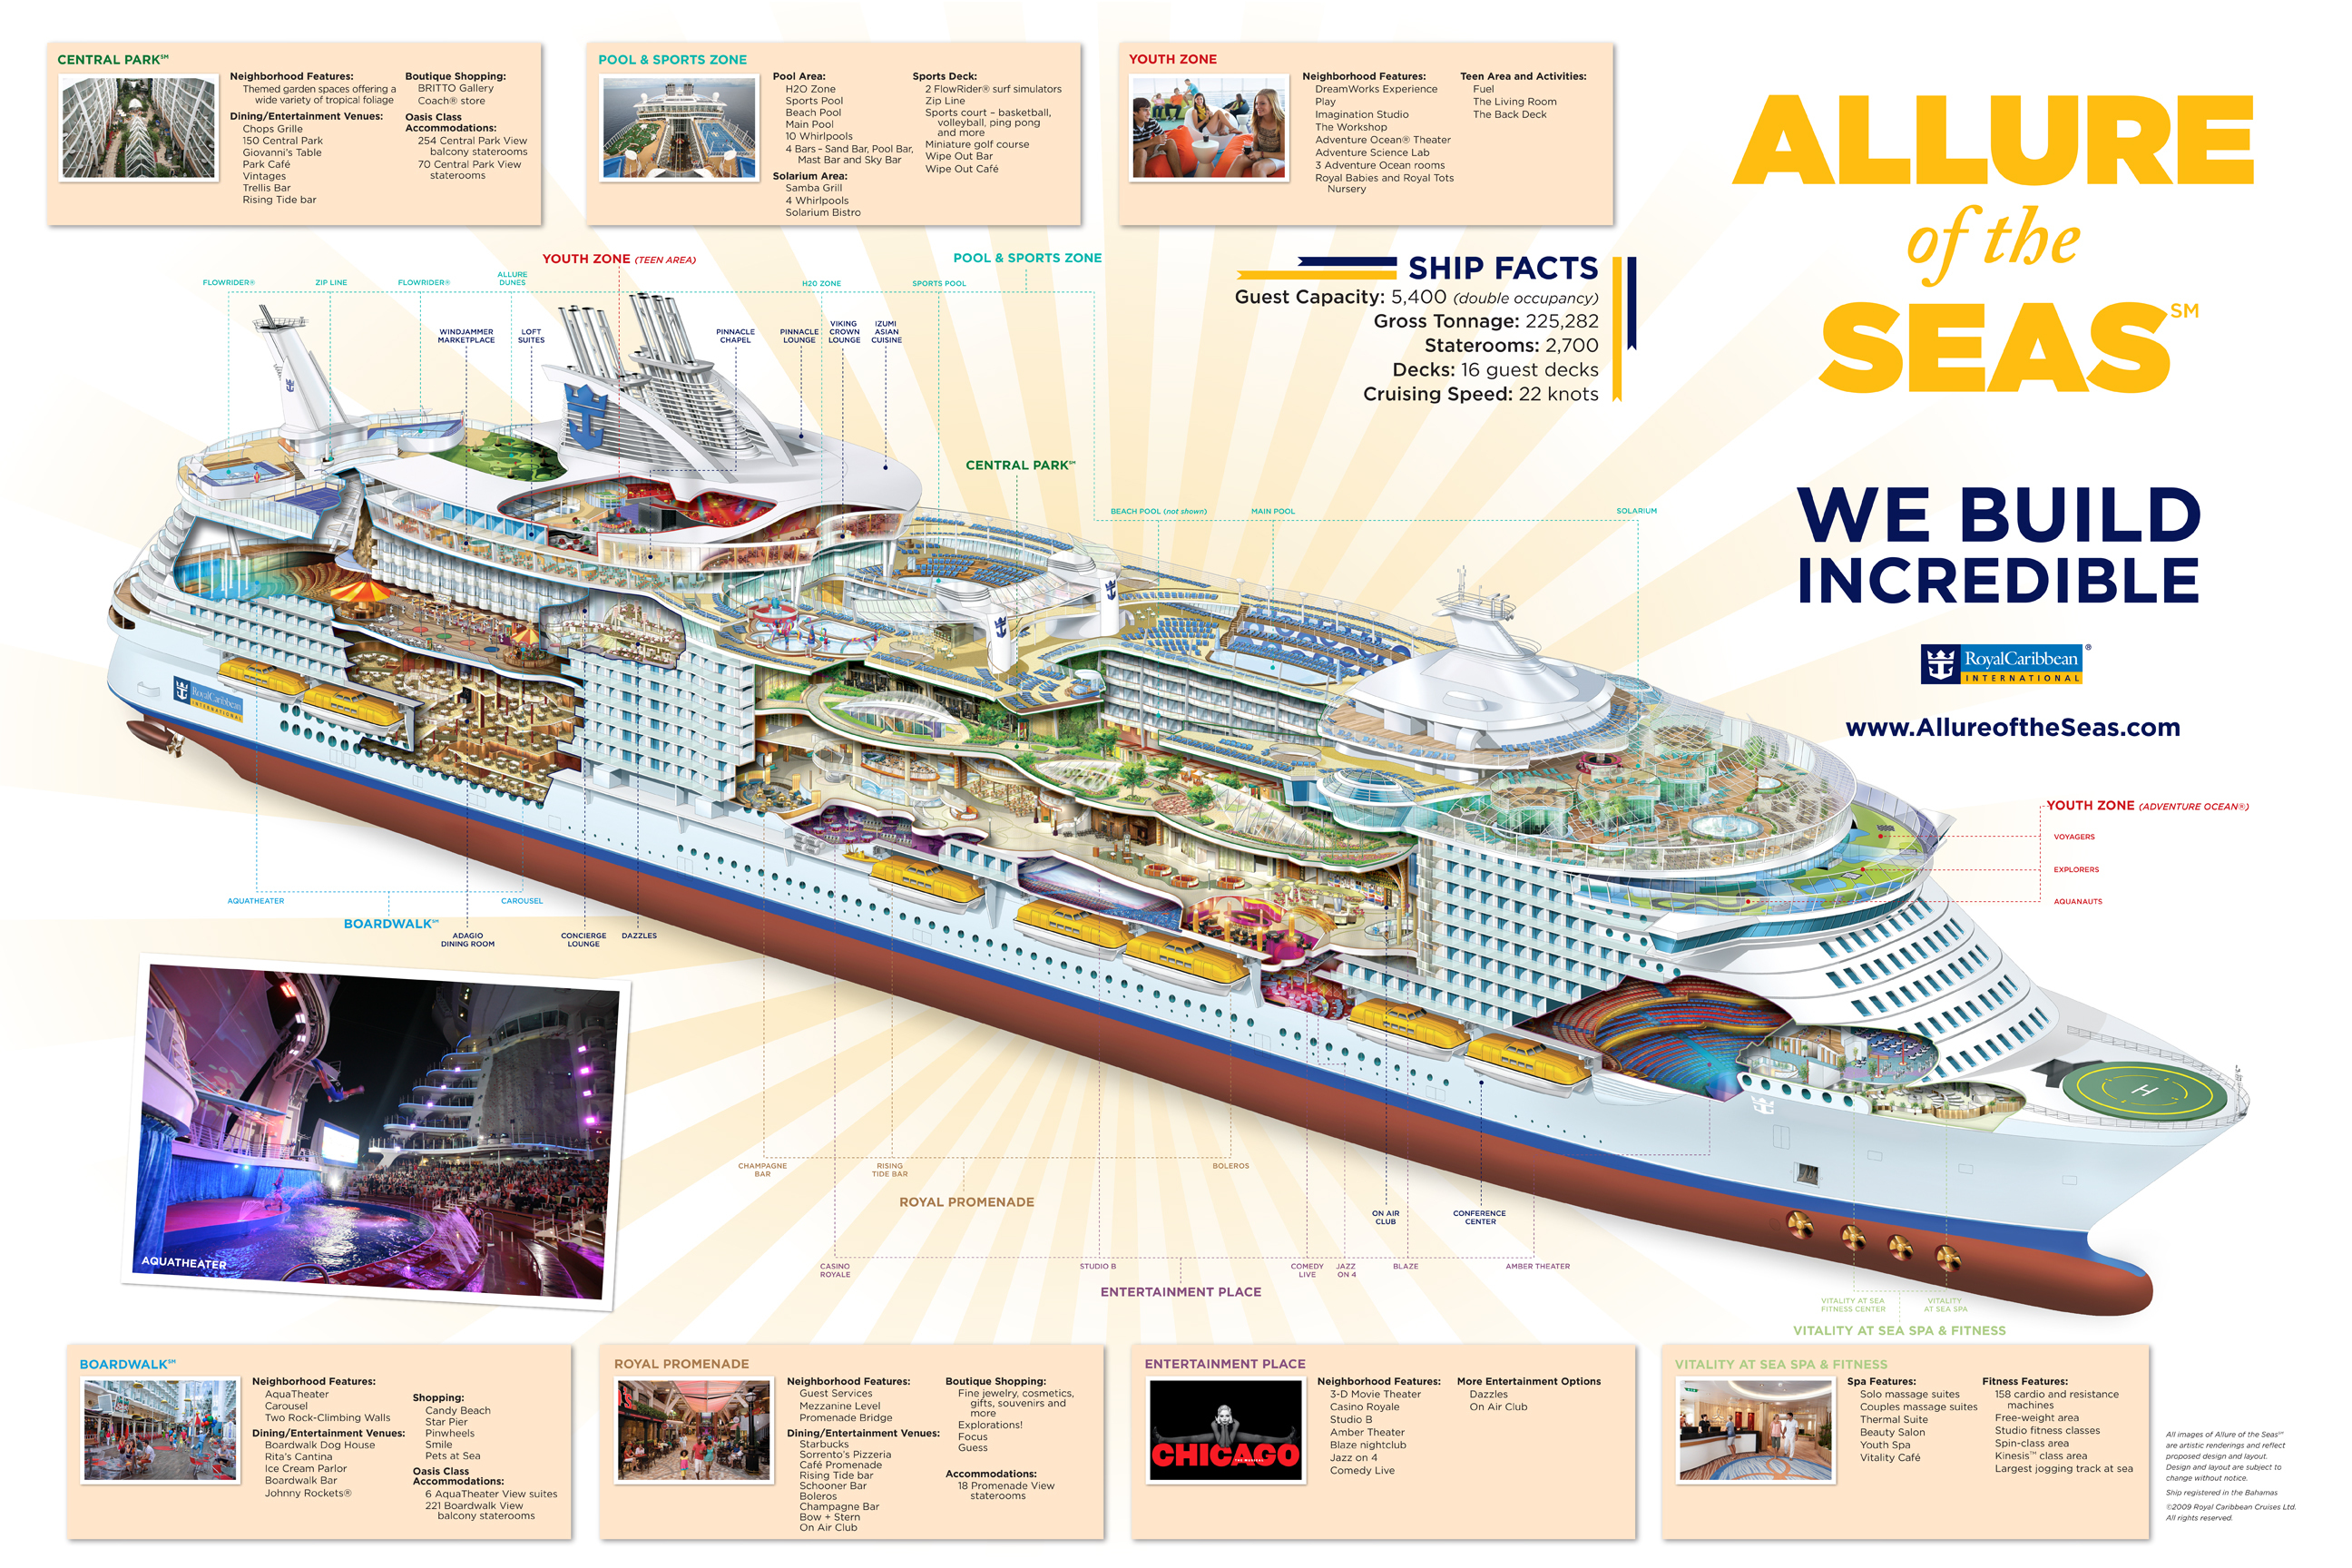 Allure of the seas the largest cruise ship the baanklon Images